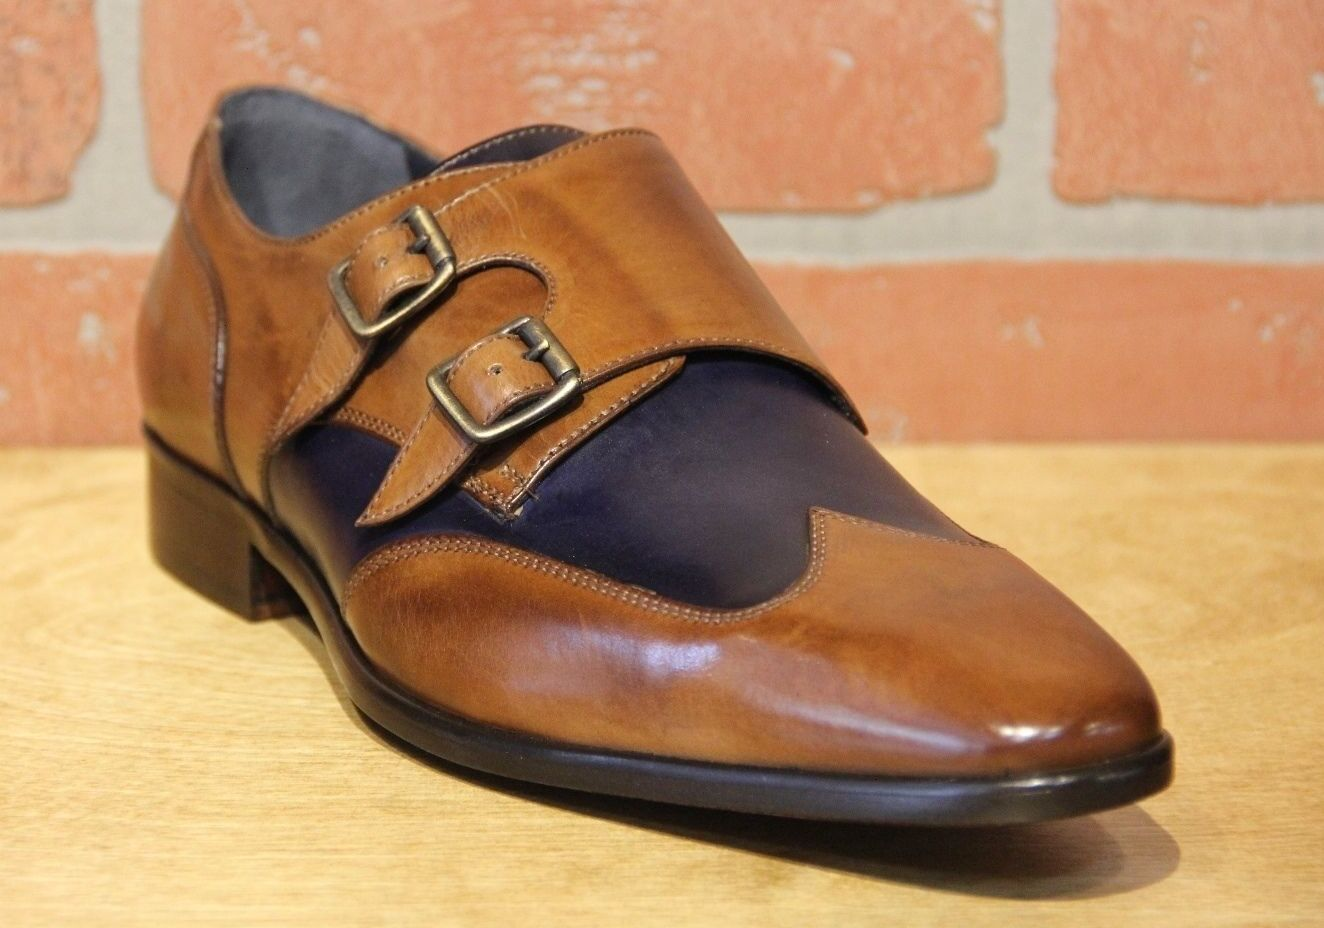 Calzoleria Toscana Men's Monk Strap Brick bluee Leather Dress shoes 1689